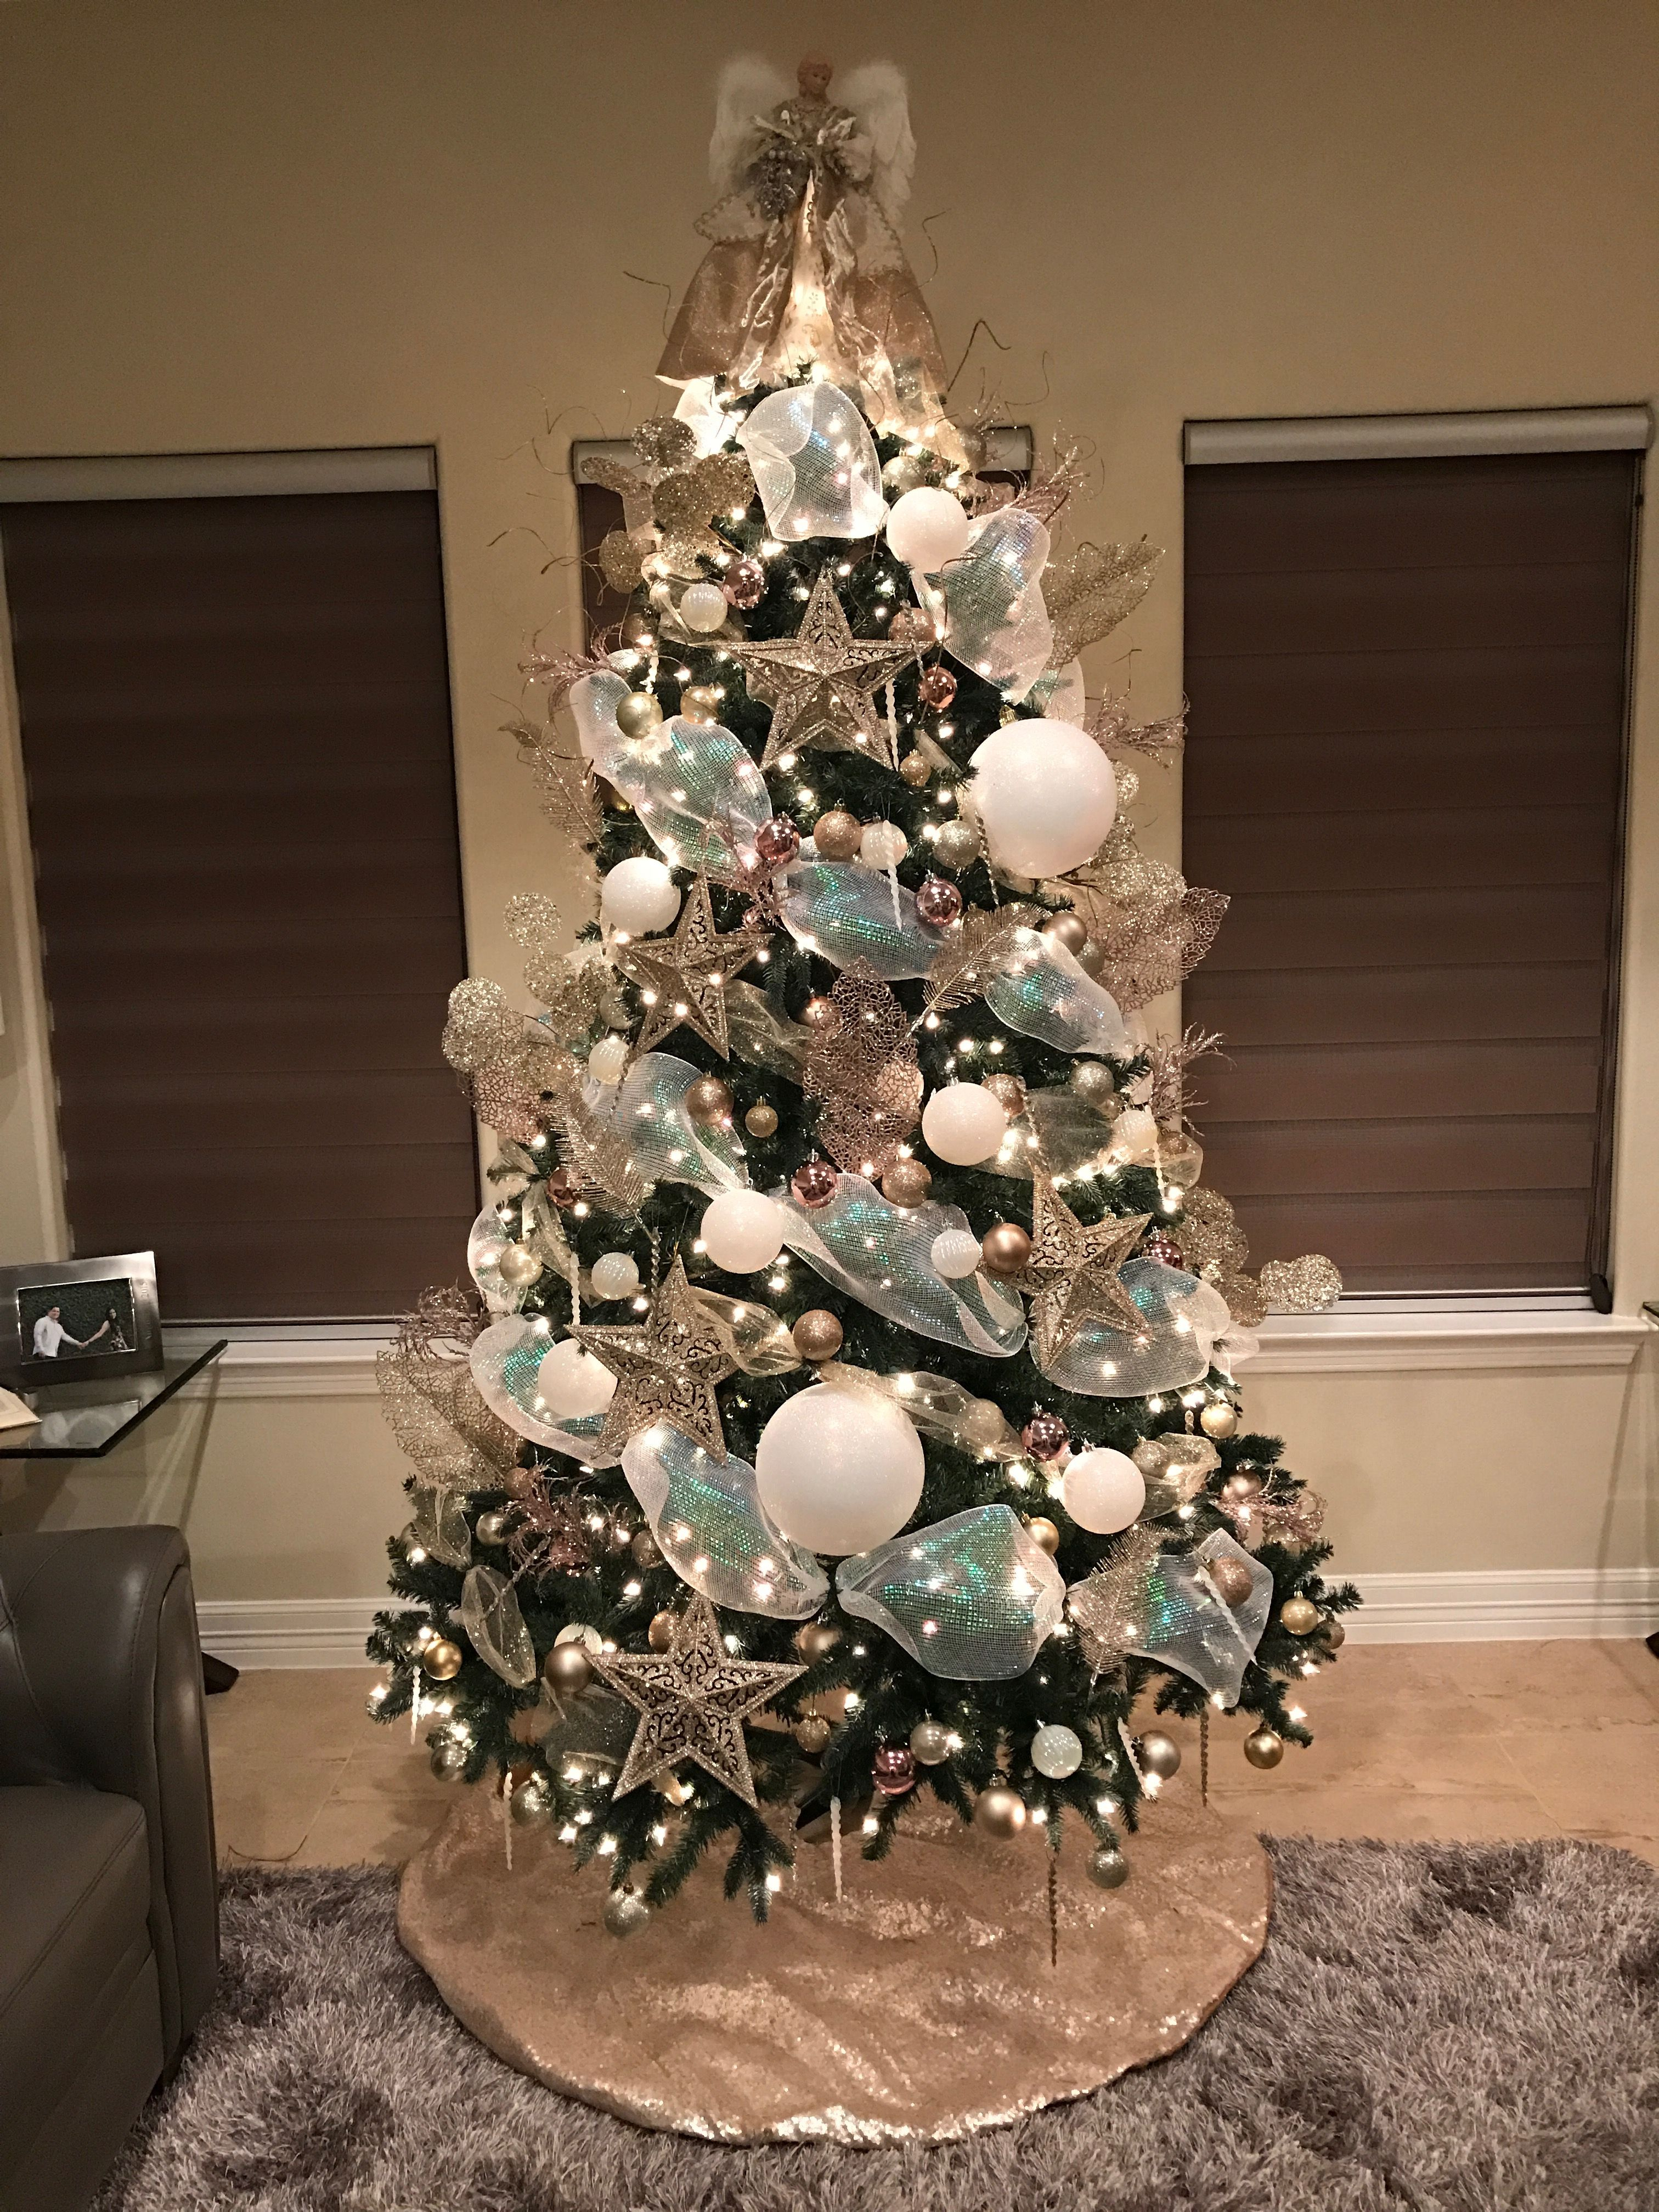 My Christmas Tree Decorated With Ribbon, Stars, Ornaments, Theme Colors